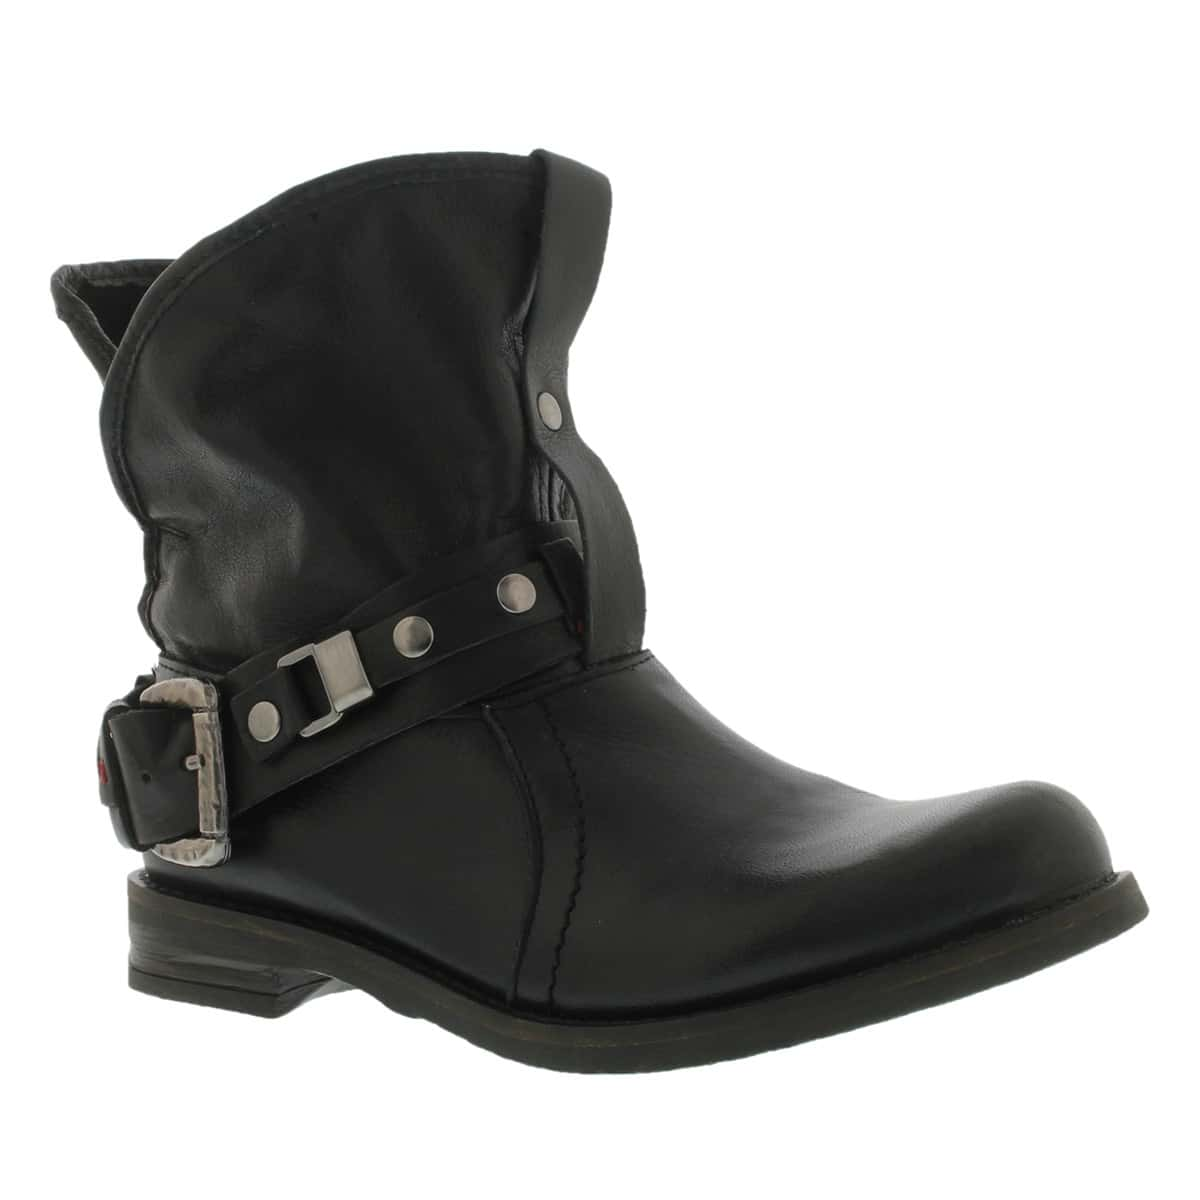 Botte cuir noir FERGY, fem